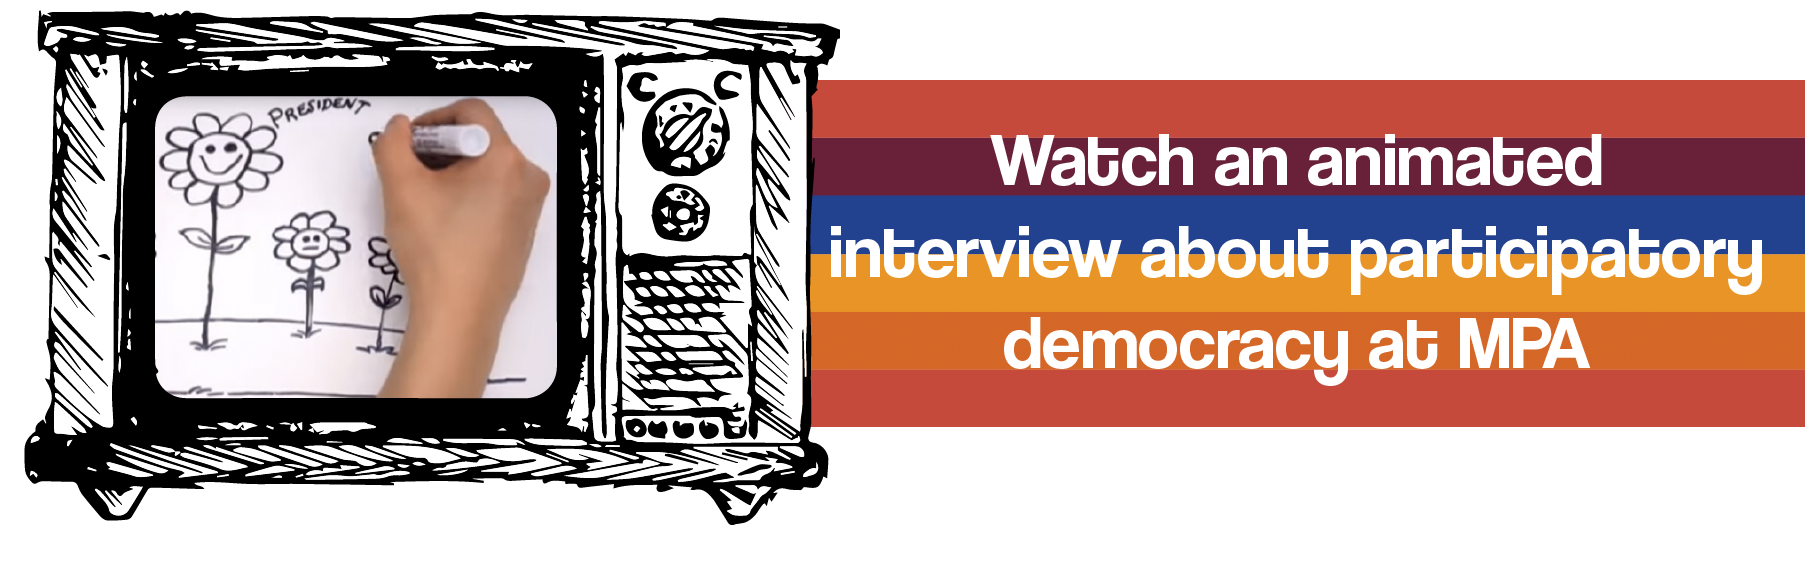 Watch an anomated interview about participatory democracy at MPA